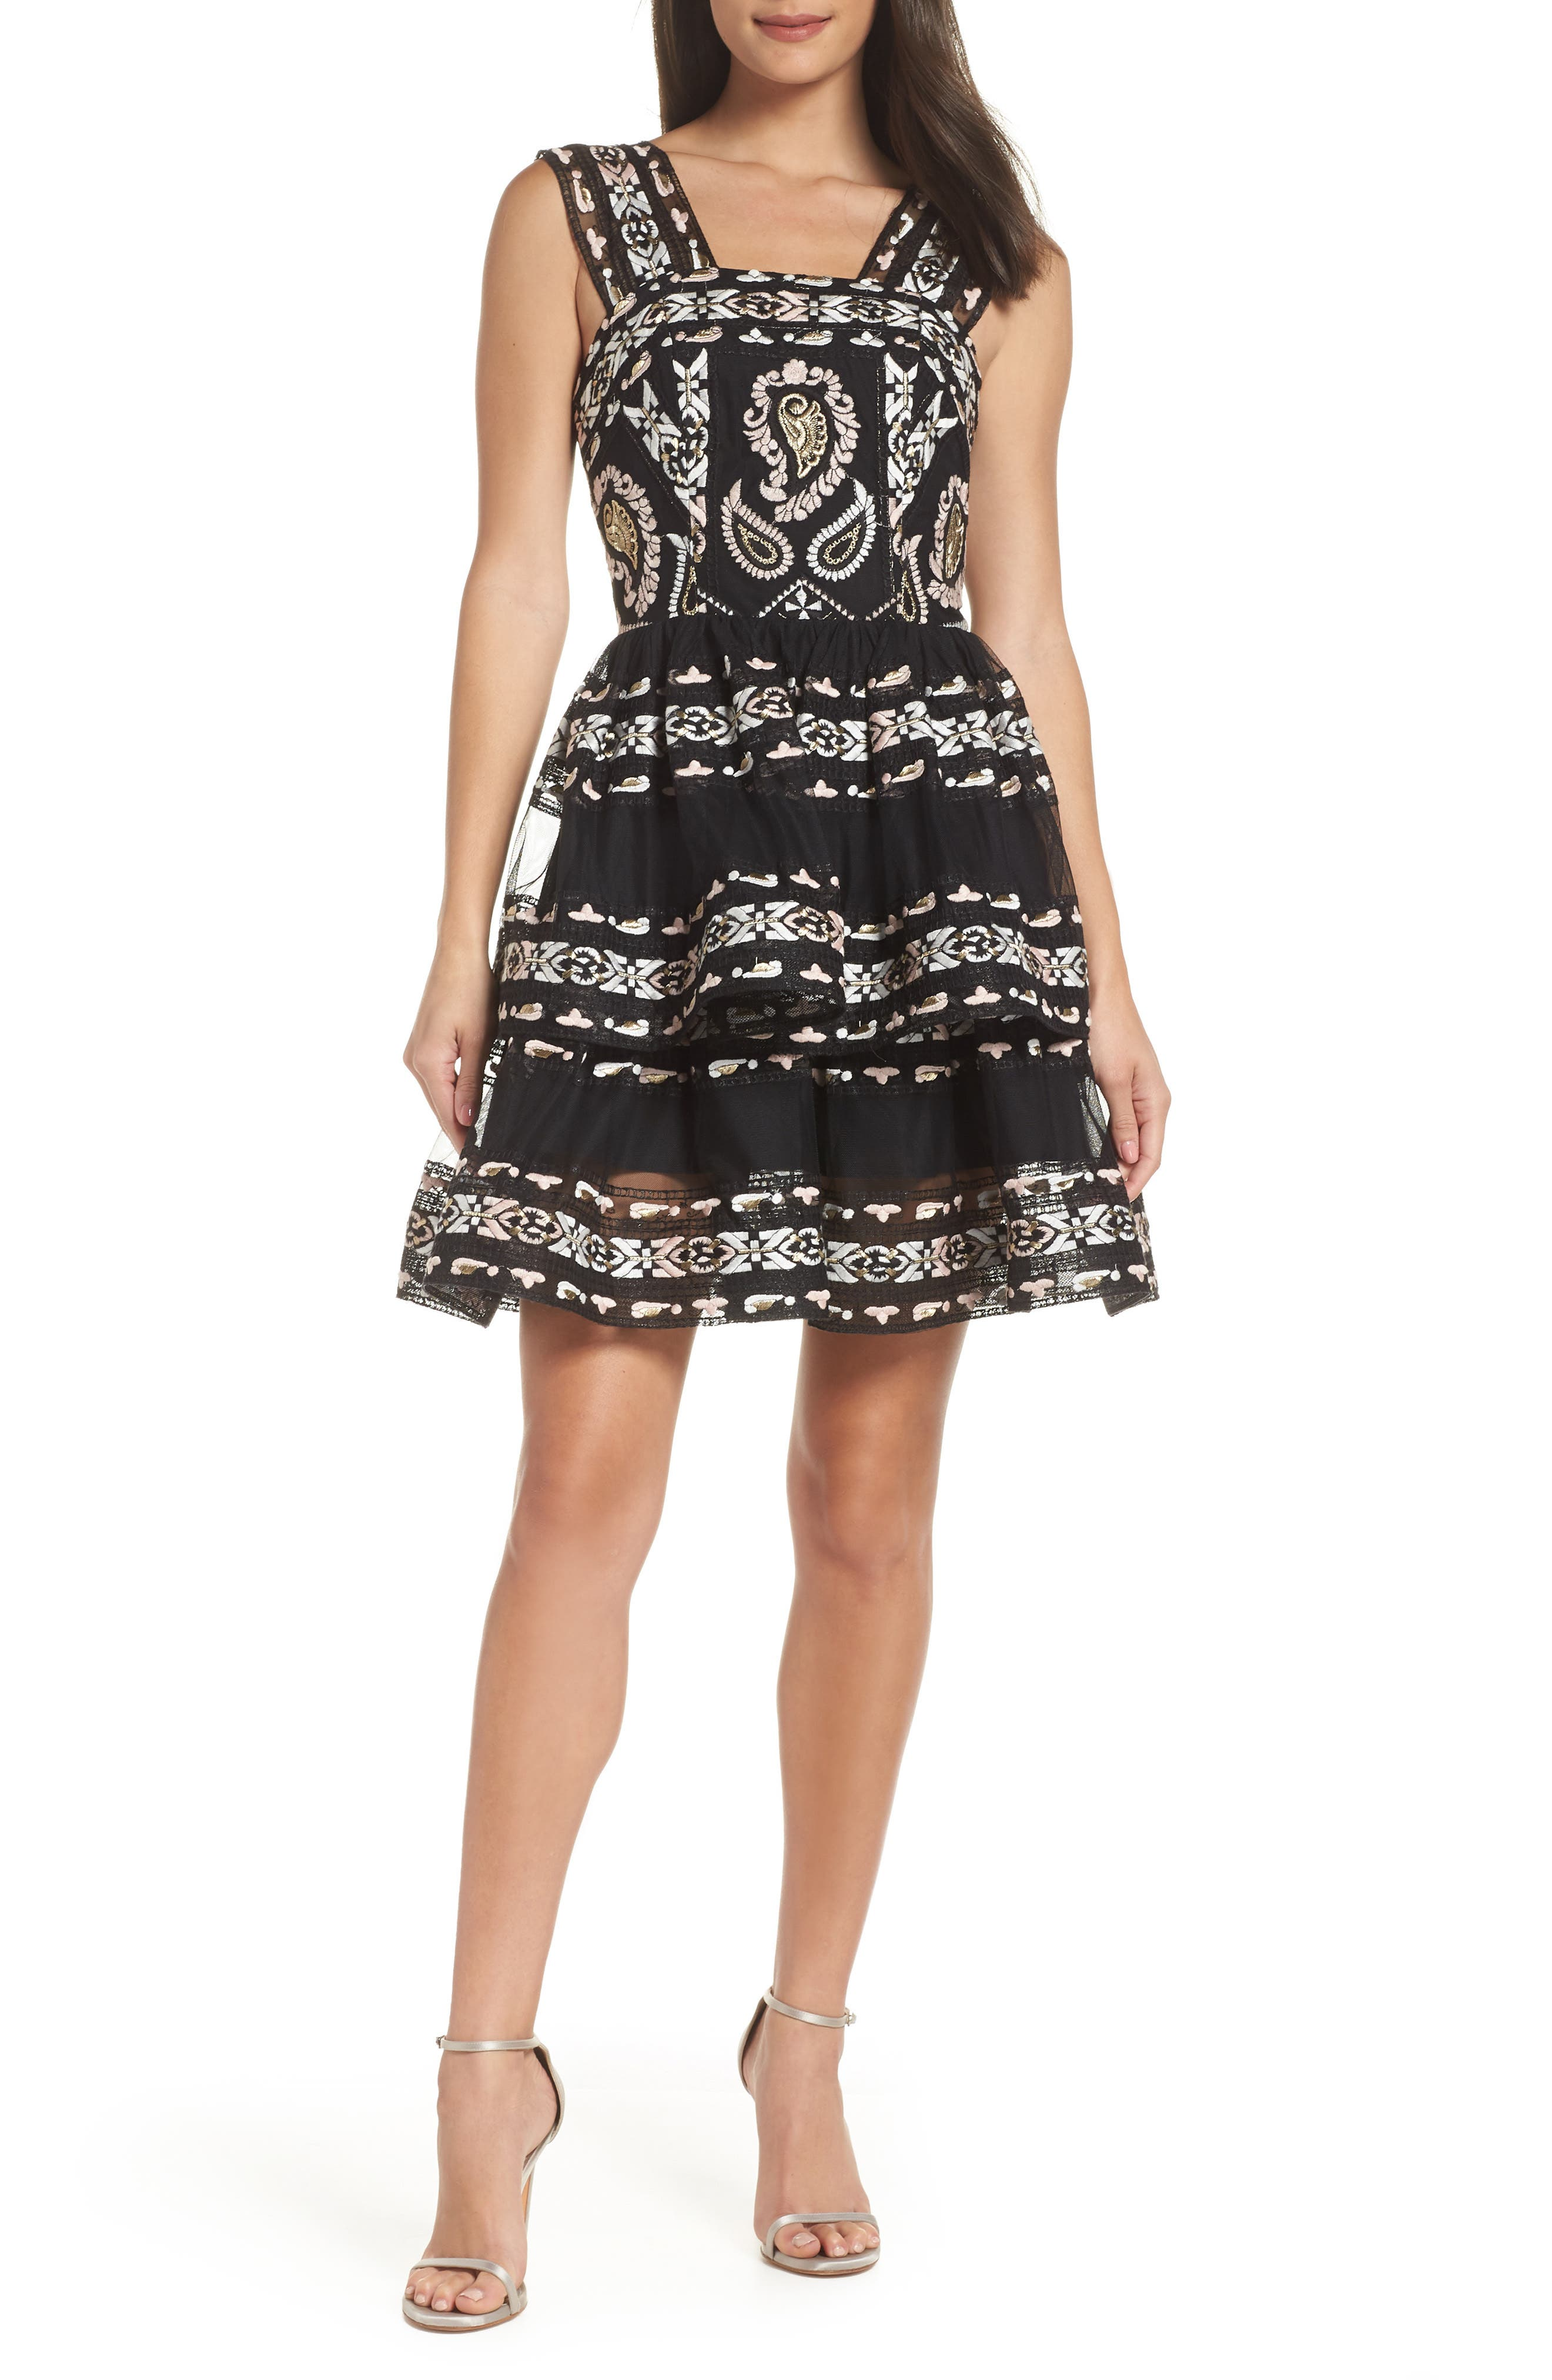 BRONX AND BANCO Ethnos Lace Fit & Flare Dress in Multicolor